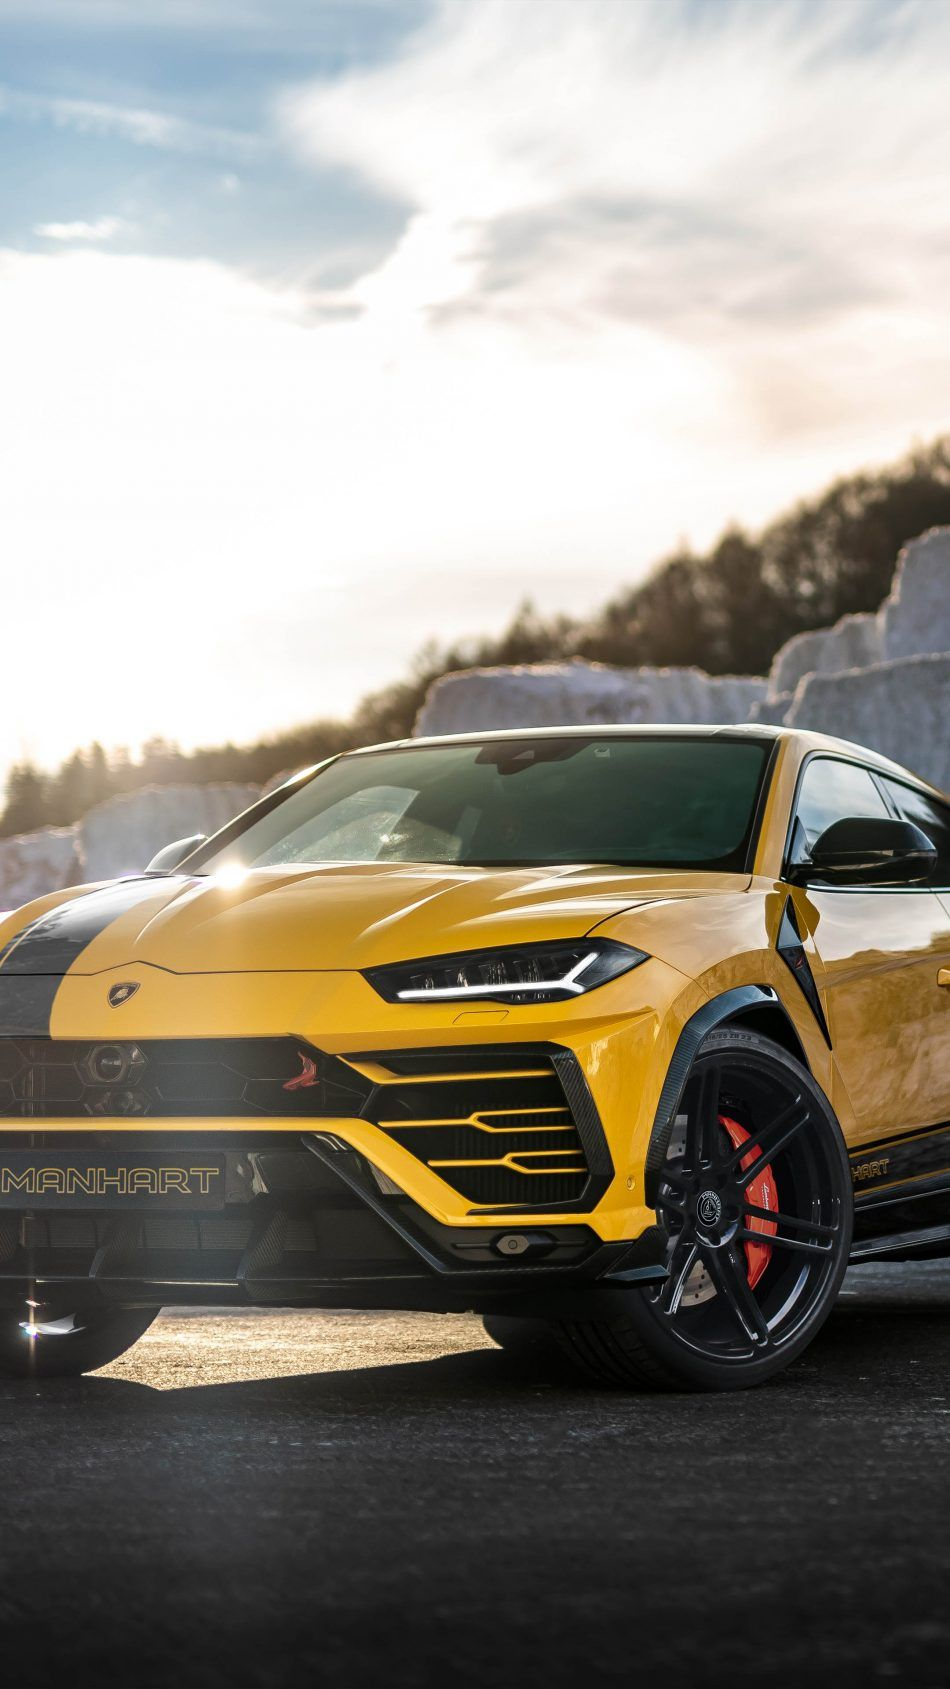 Manhart Lamborghini Urus 800 2019 4k Ultra Hd Mobile Wallpaper Sports Cars Lamborghini Lamborghini Luxury Cars